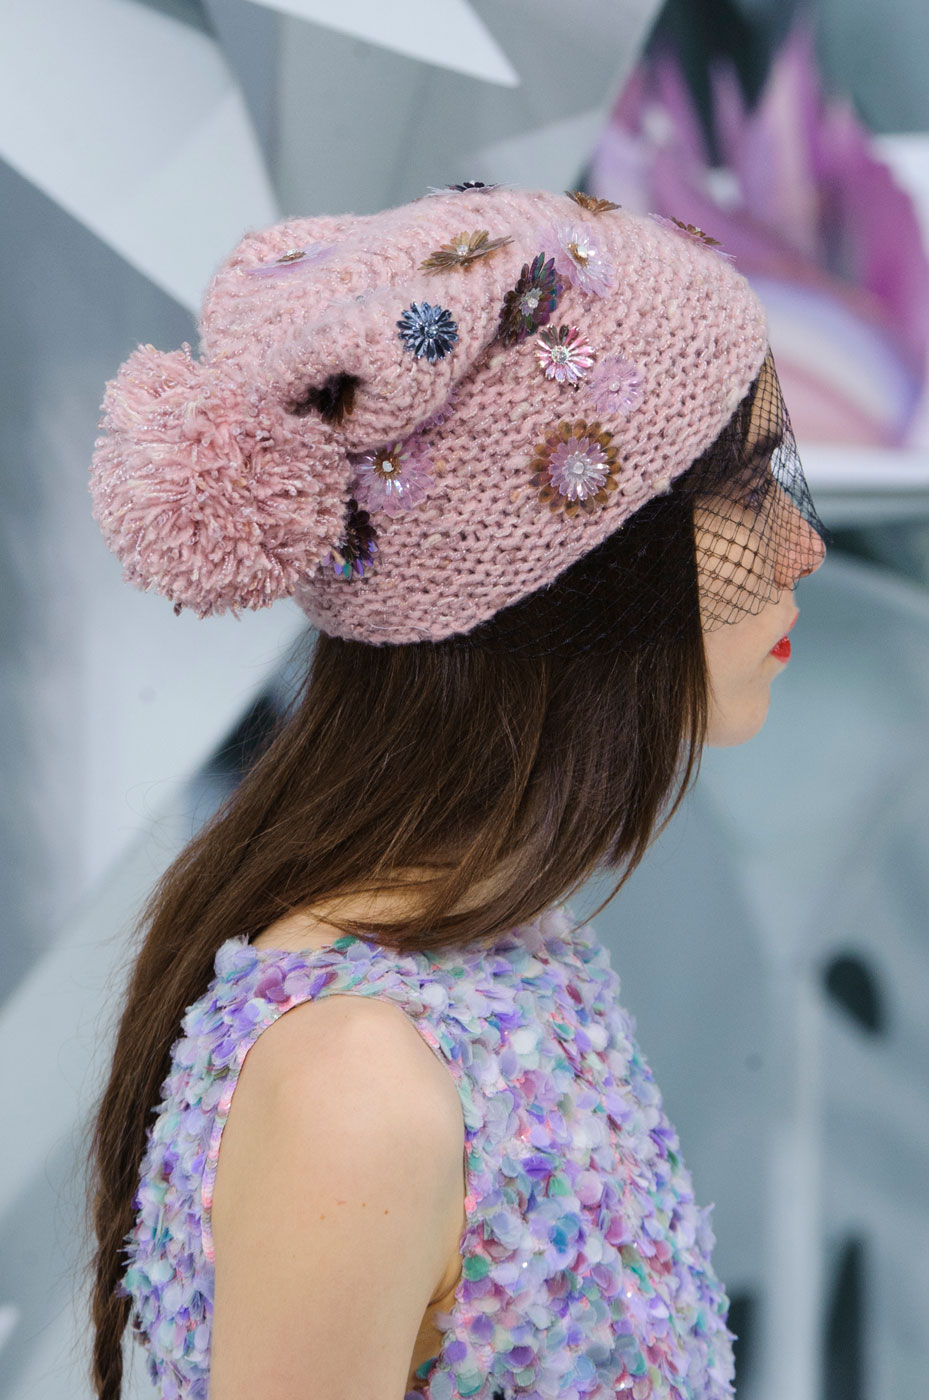 Chanel-fashion-runway-show-close-ups-haute-couture-paris-spring-summer-2015-the-impression-126